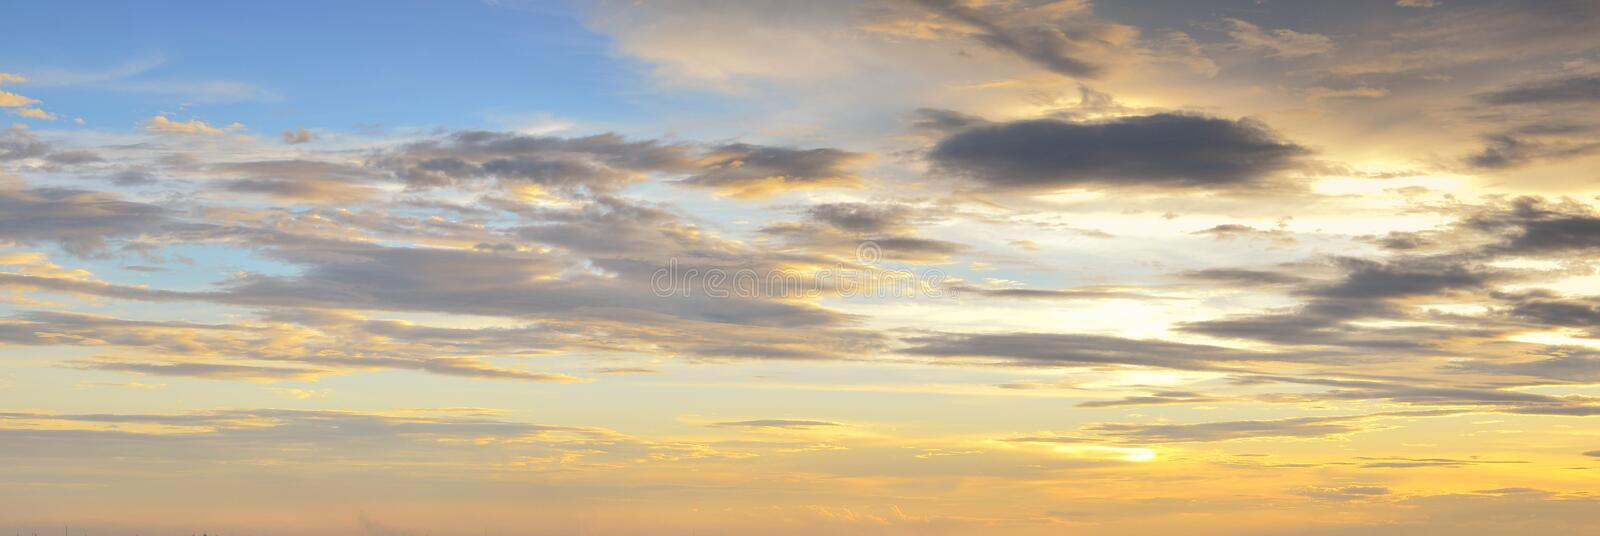 Colorful sunset sky with clouds in twilight time royalty free stock image